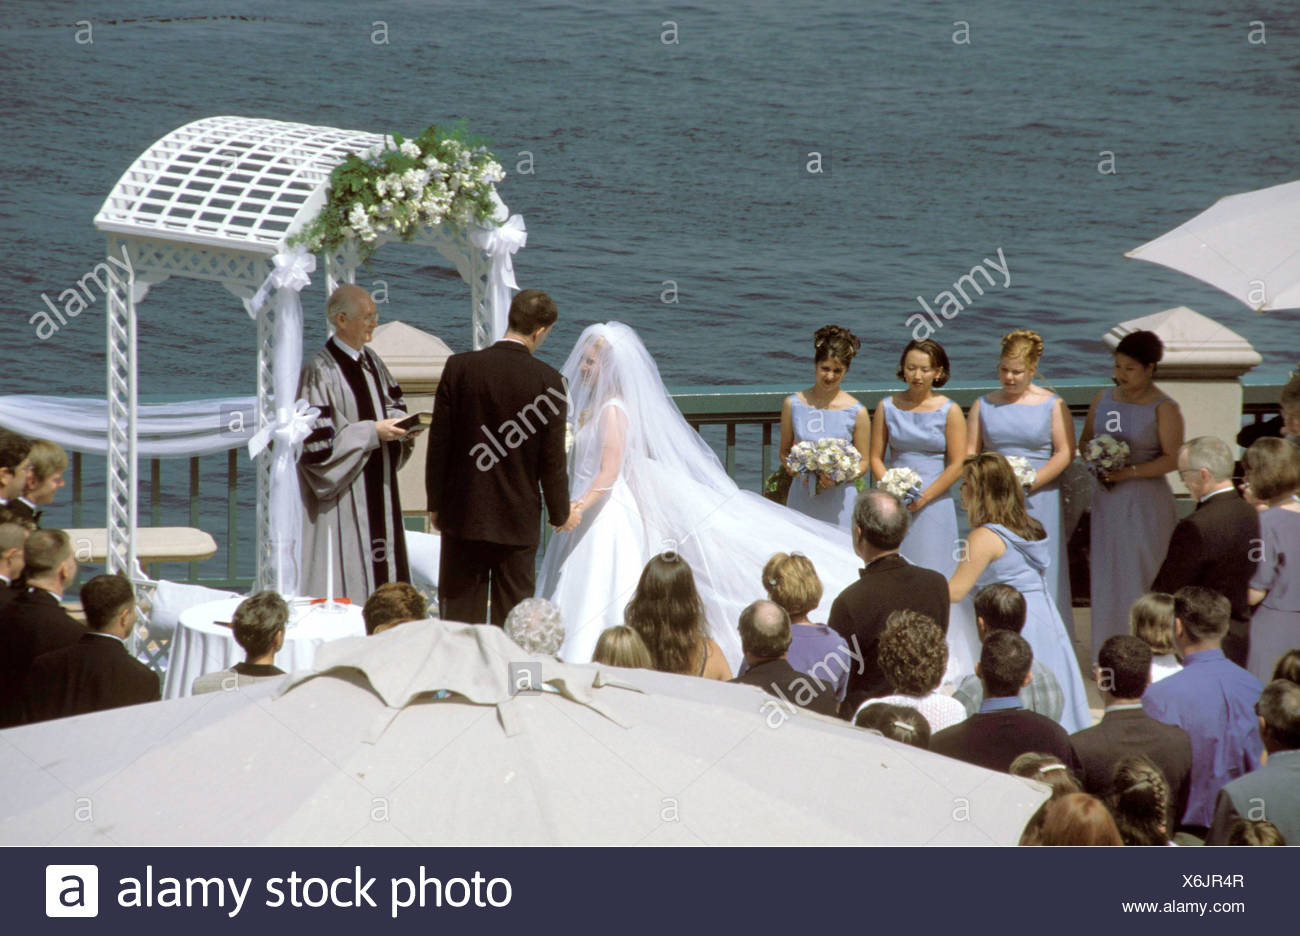 Hochzeitszeremonie In Amerika Stock Photo 279467127 Alamy